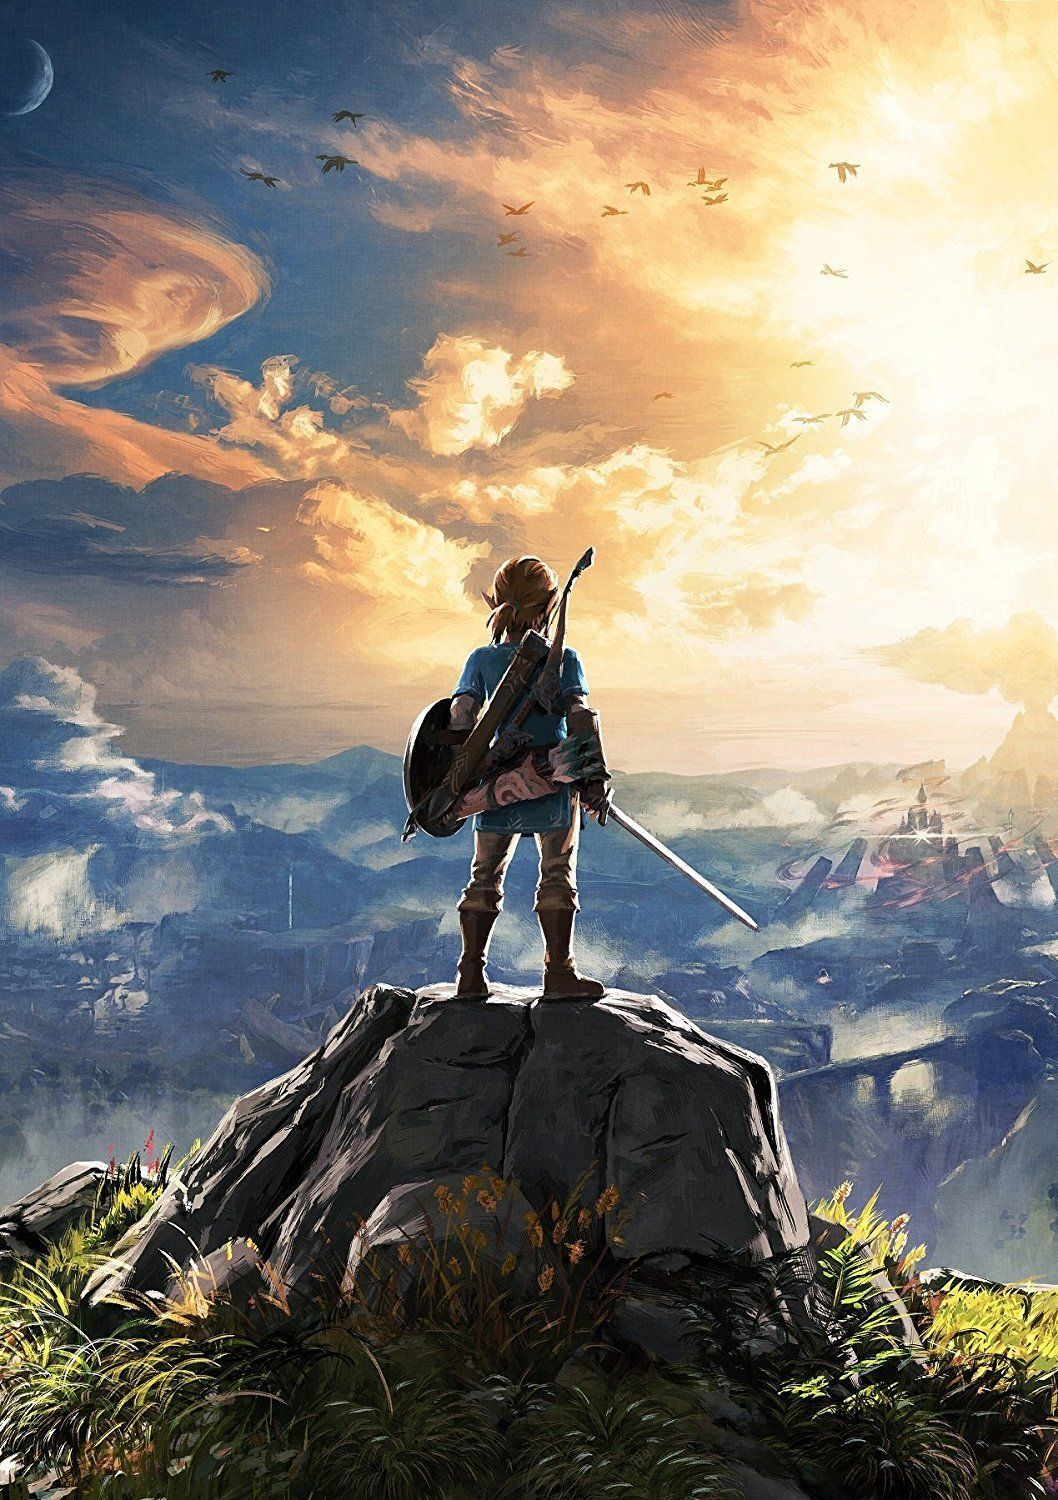 Legend Of Zelda Breath Of The Wild Königliche Küche The Legend Of Zelda Breath Of The Wild Poster Amazon De